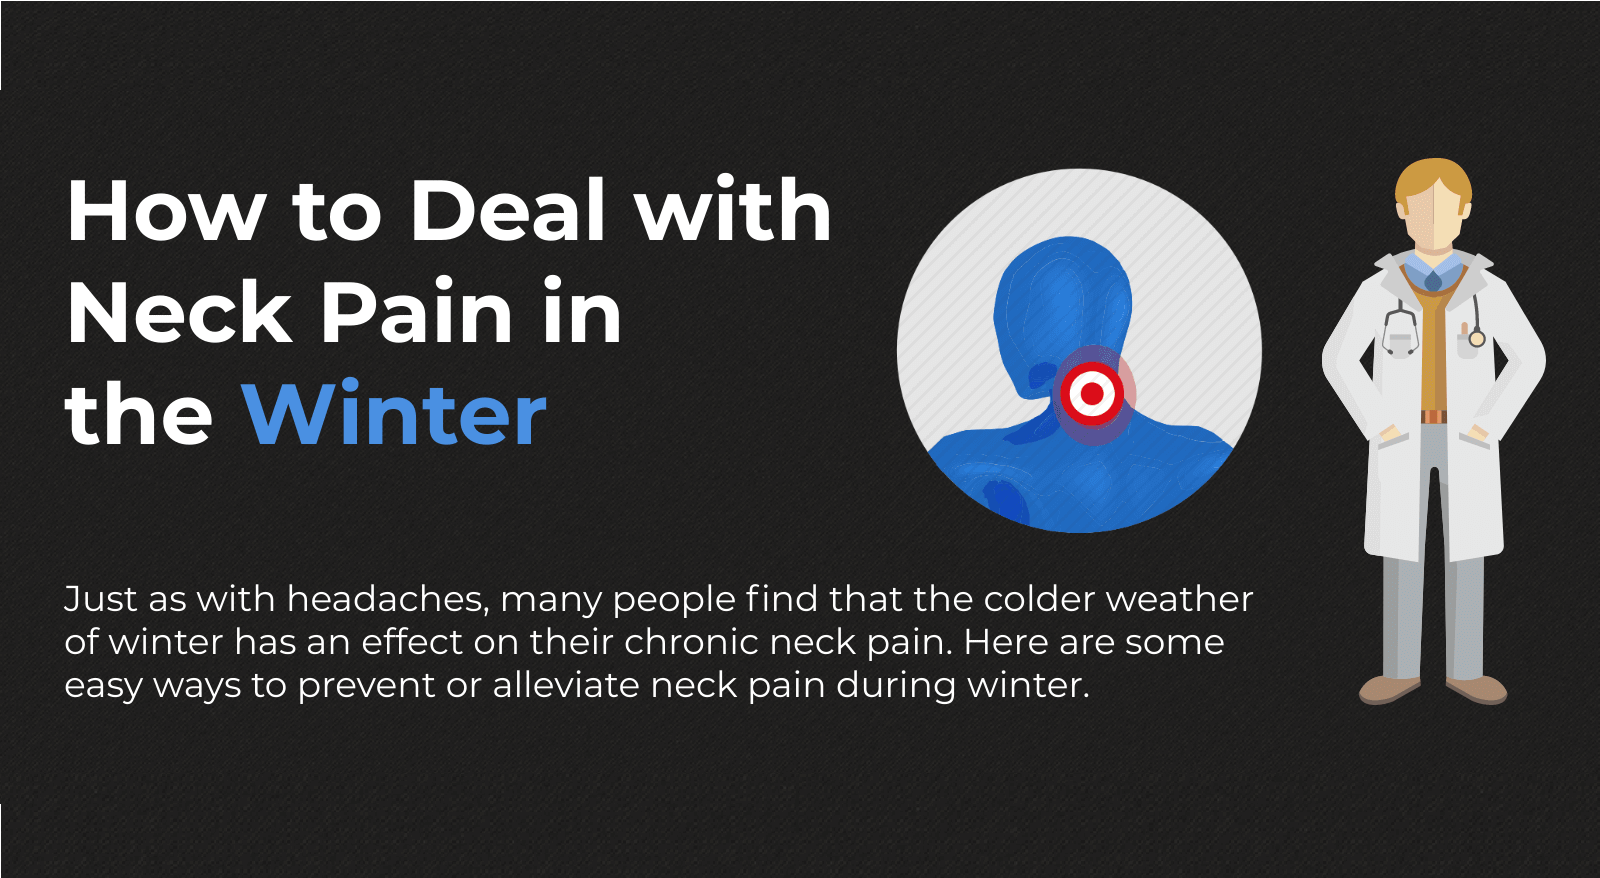 How to Deal with Neck Pain in the Winter [Infographic]